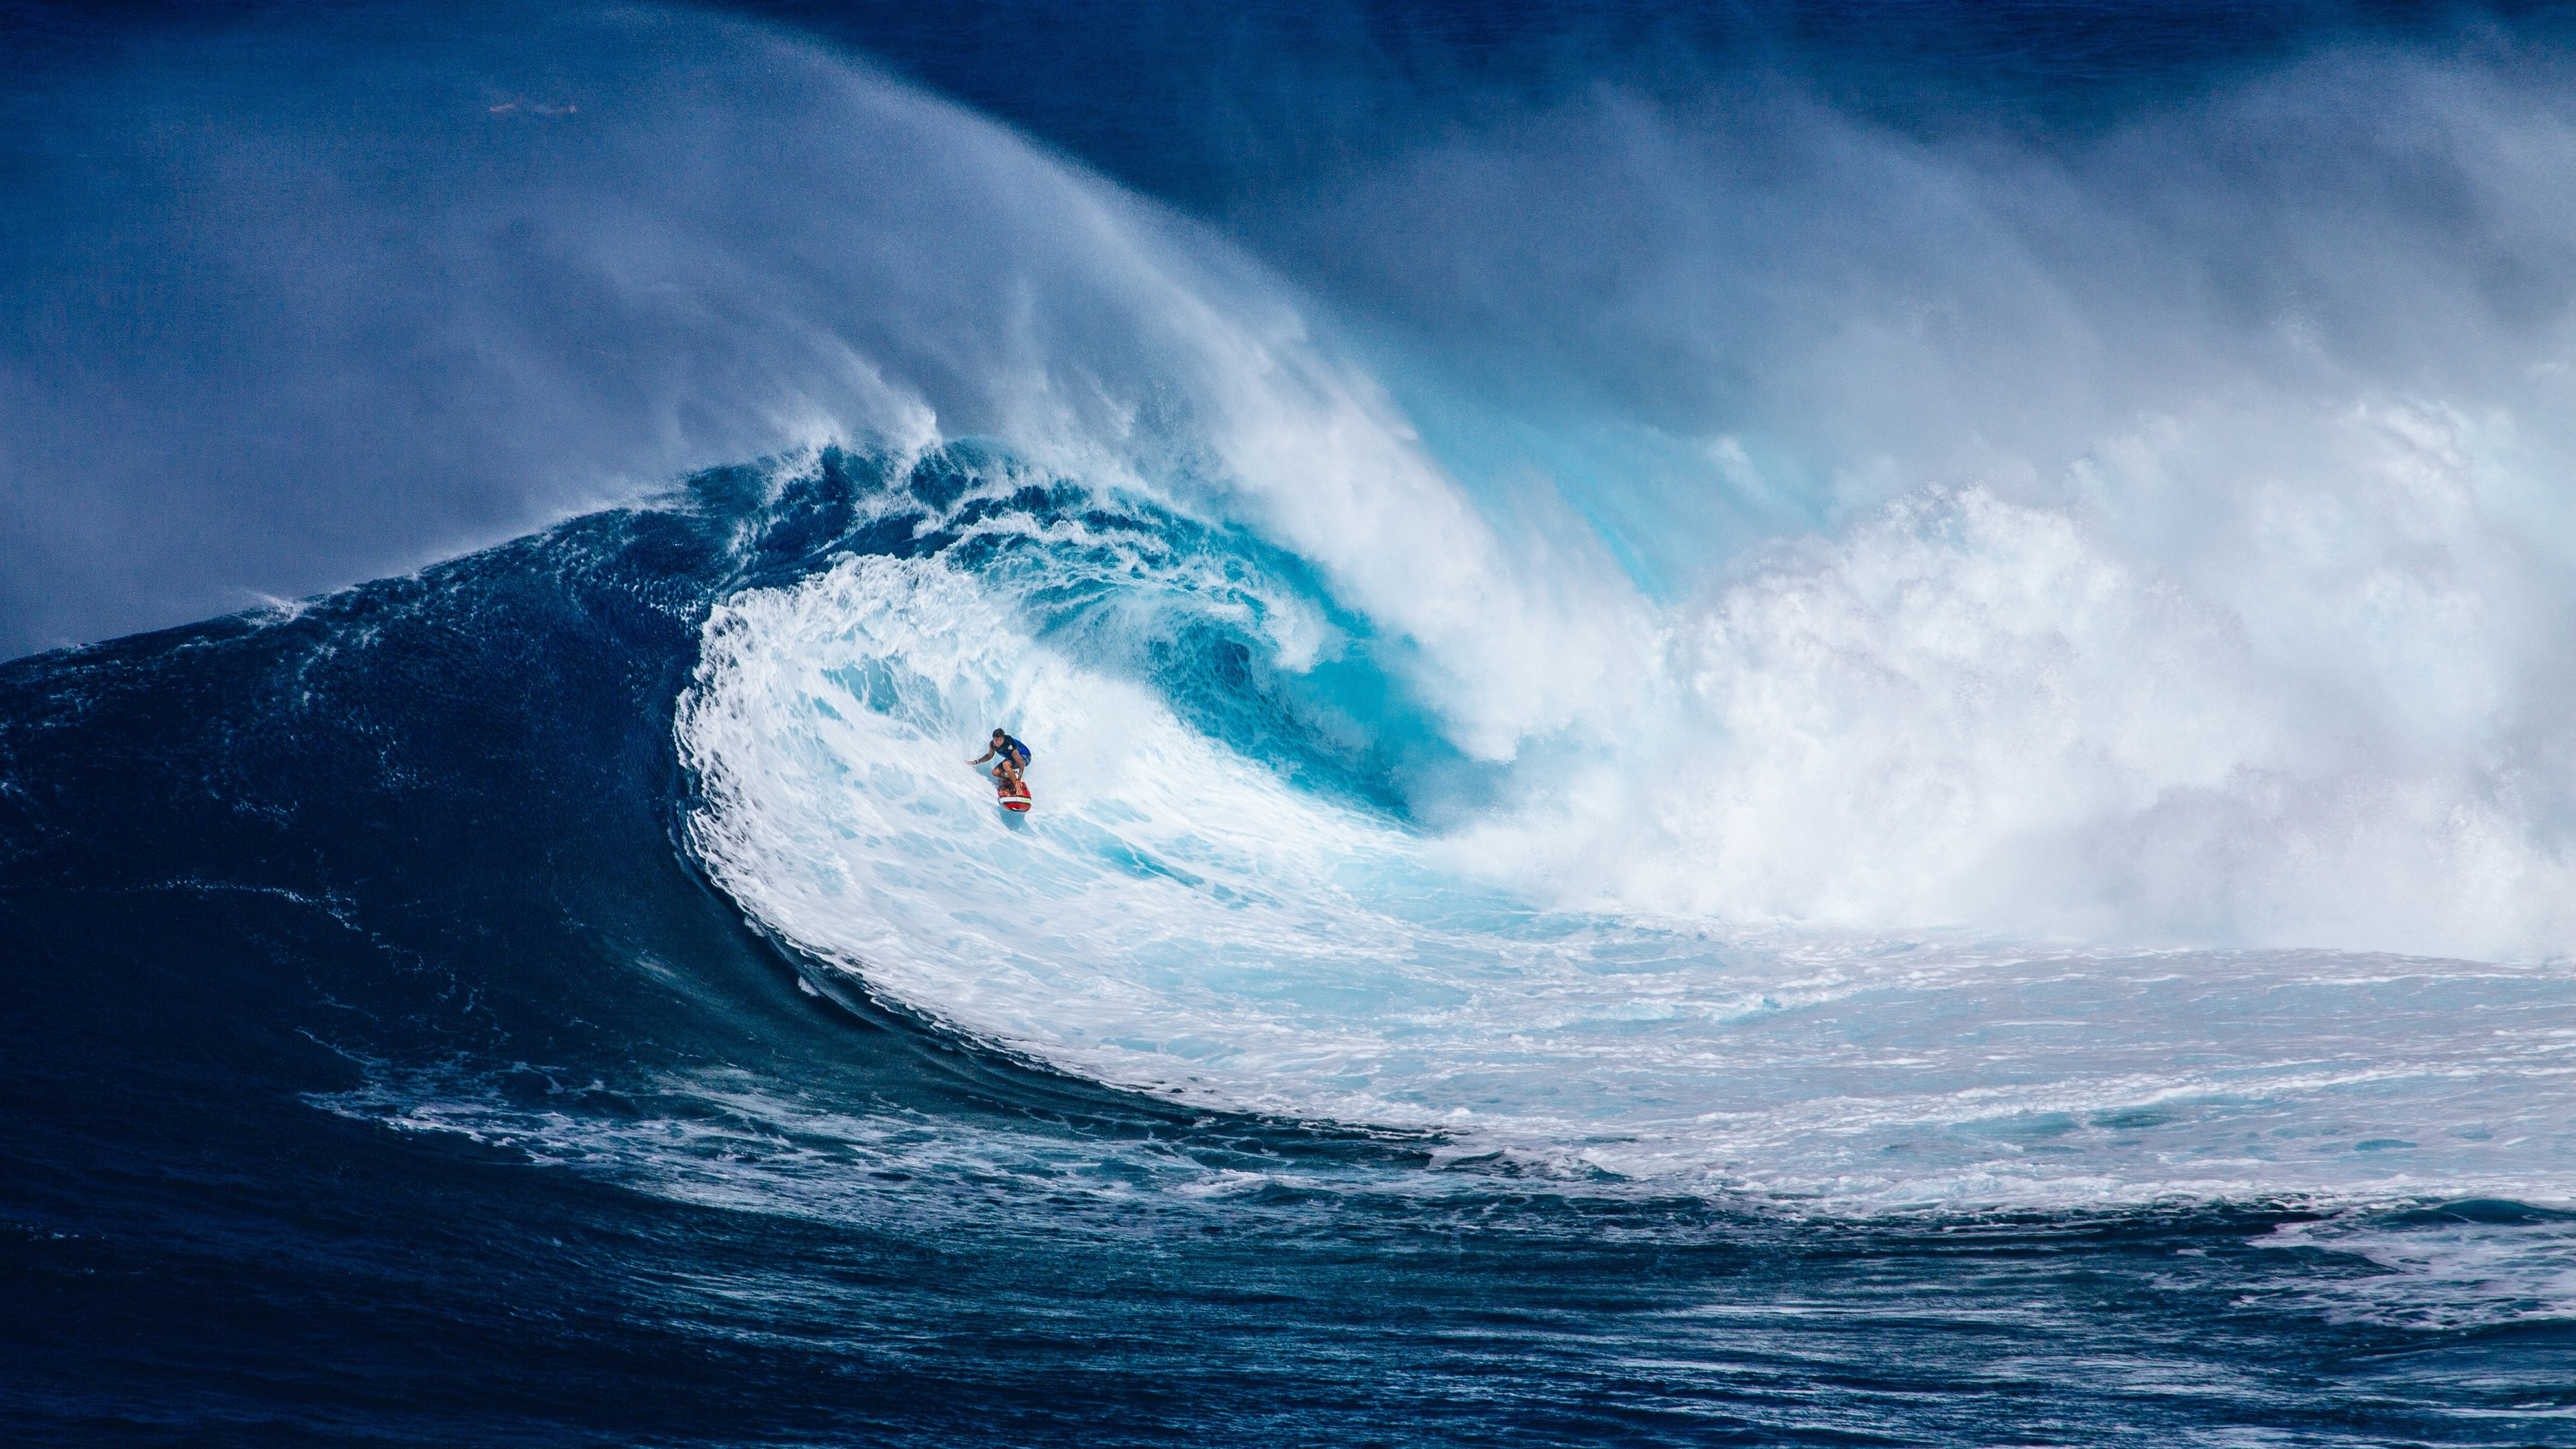 Man Surfing In Grand Wave Wallpaper 4k Ultra Hd Id3933